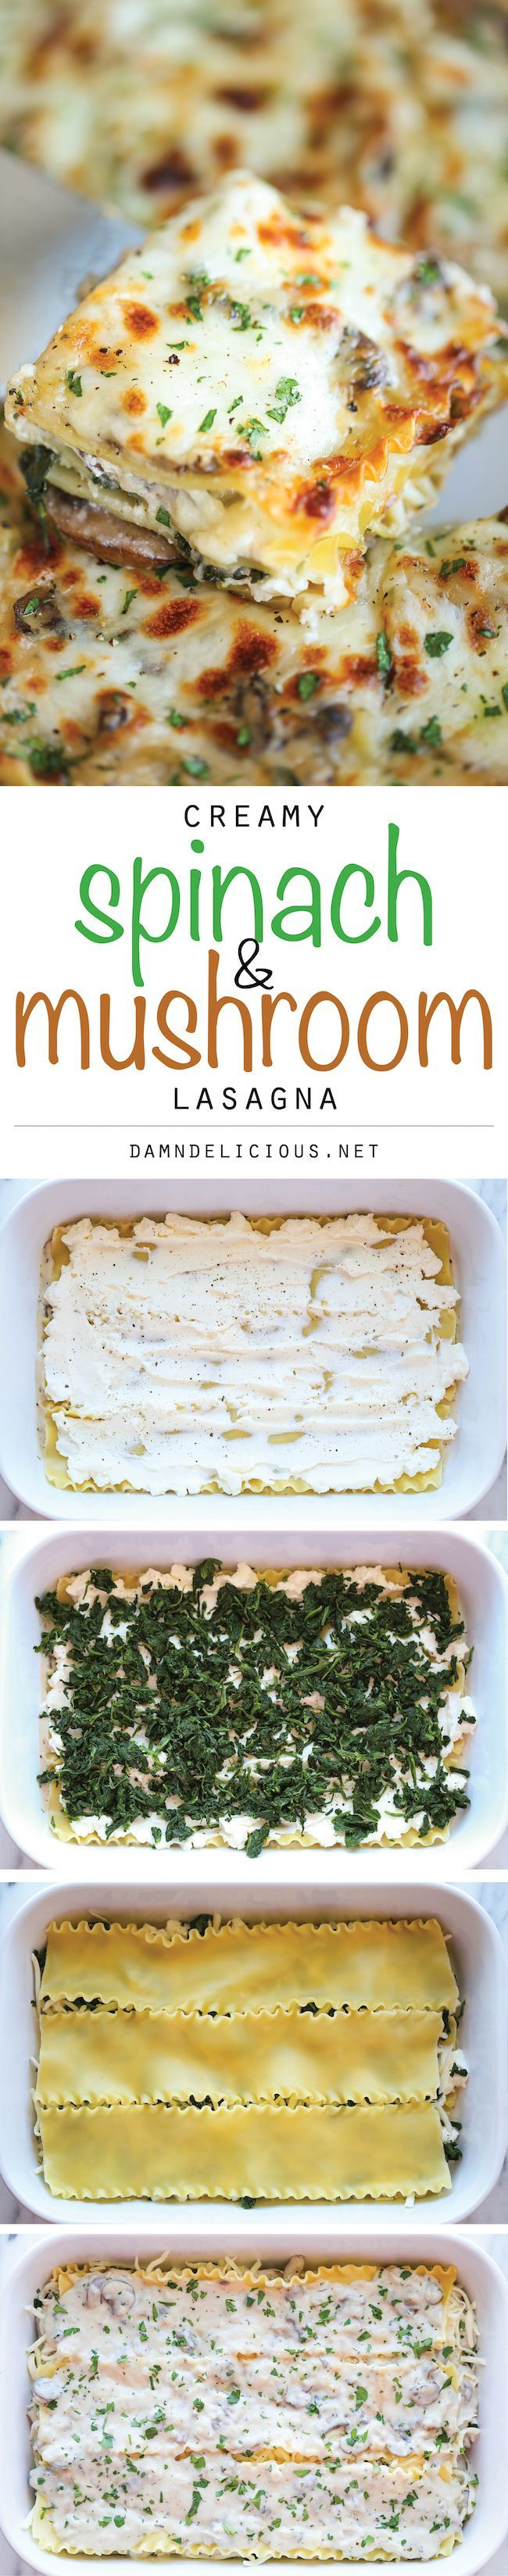 Creamy Spinach and Mushroom Lasagna - This is sure to become a family favorite. Best of all, it's freezer-friendly and can also be made ahead of time!: